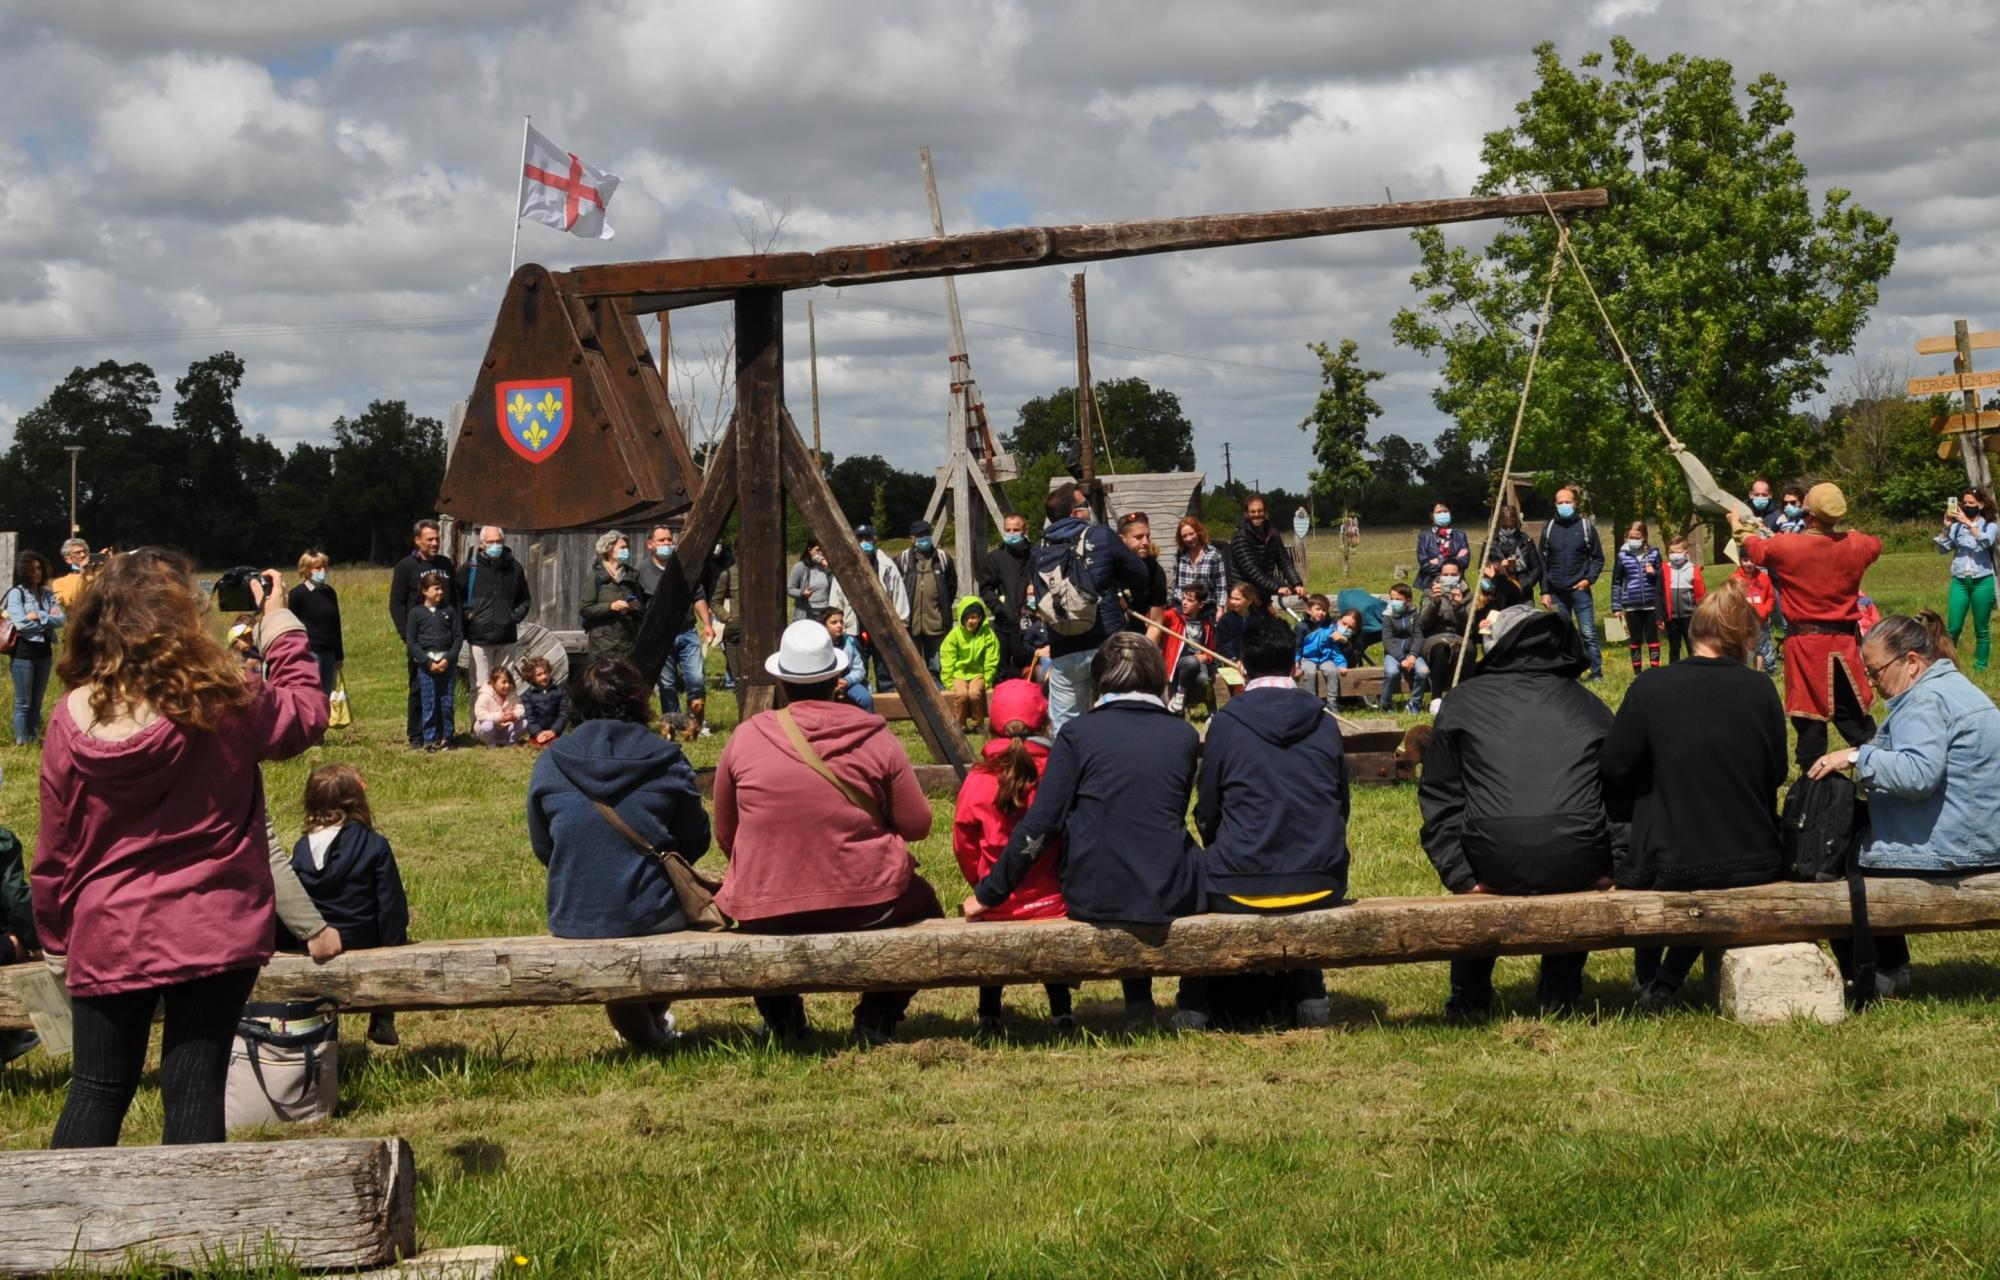 Trebuchet siege machine - Fortified castle and medieval theme park in Charente Maritime